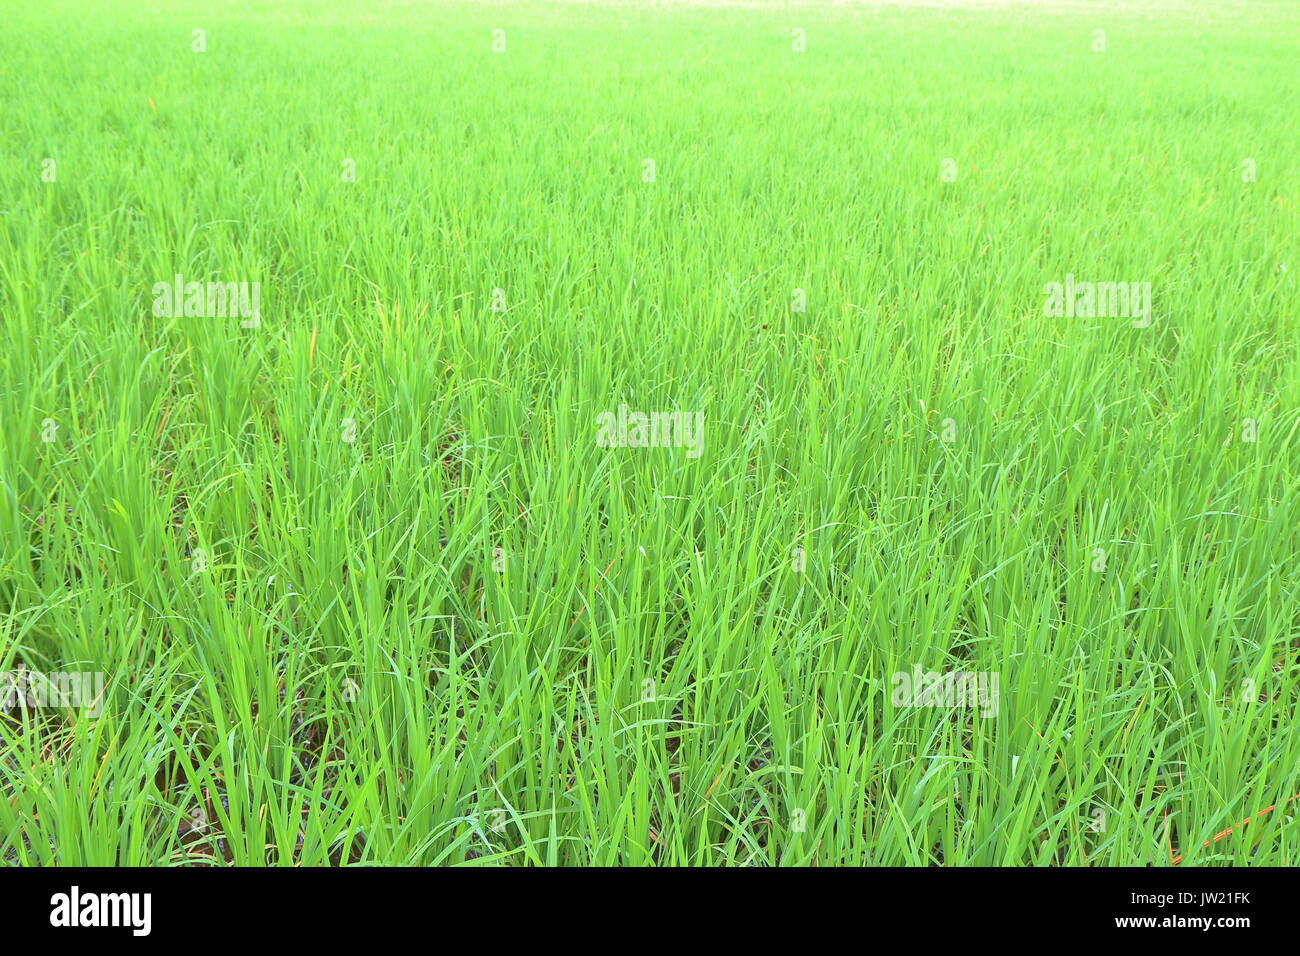 Rice field in the Philippines. Rice is the staple food for Filipinos. - Stock Image